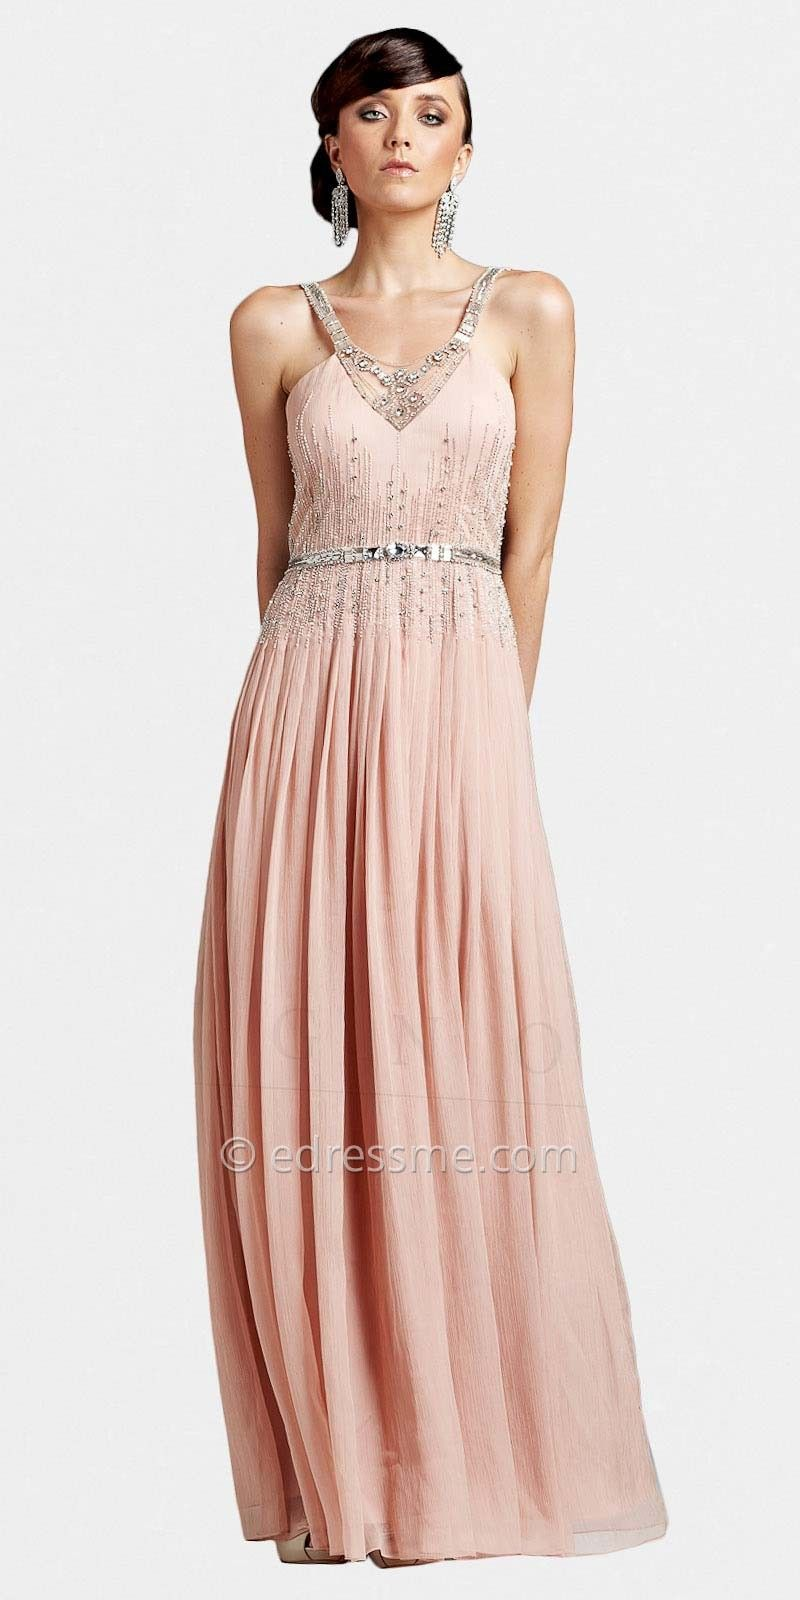 Delicate Chiffon Beaded Vintage Inspired Prom Dresses by Mignon ...